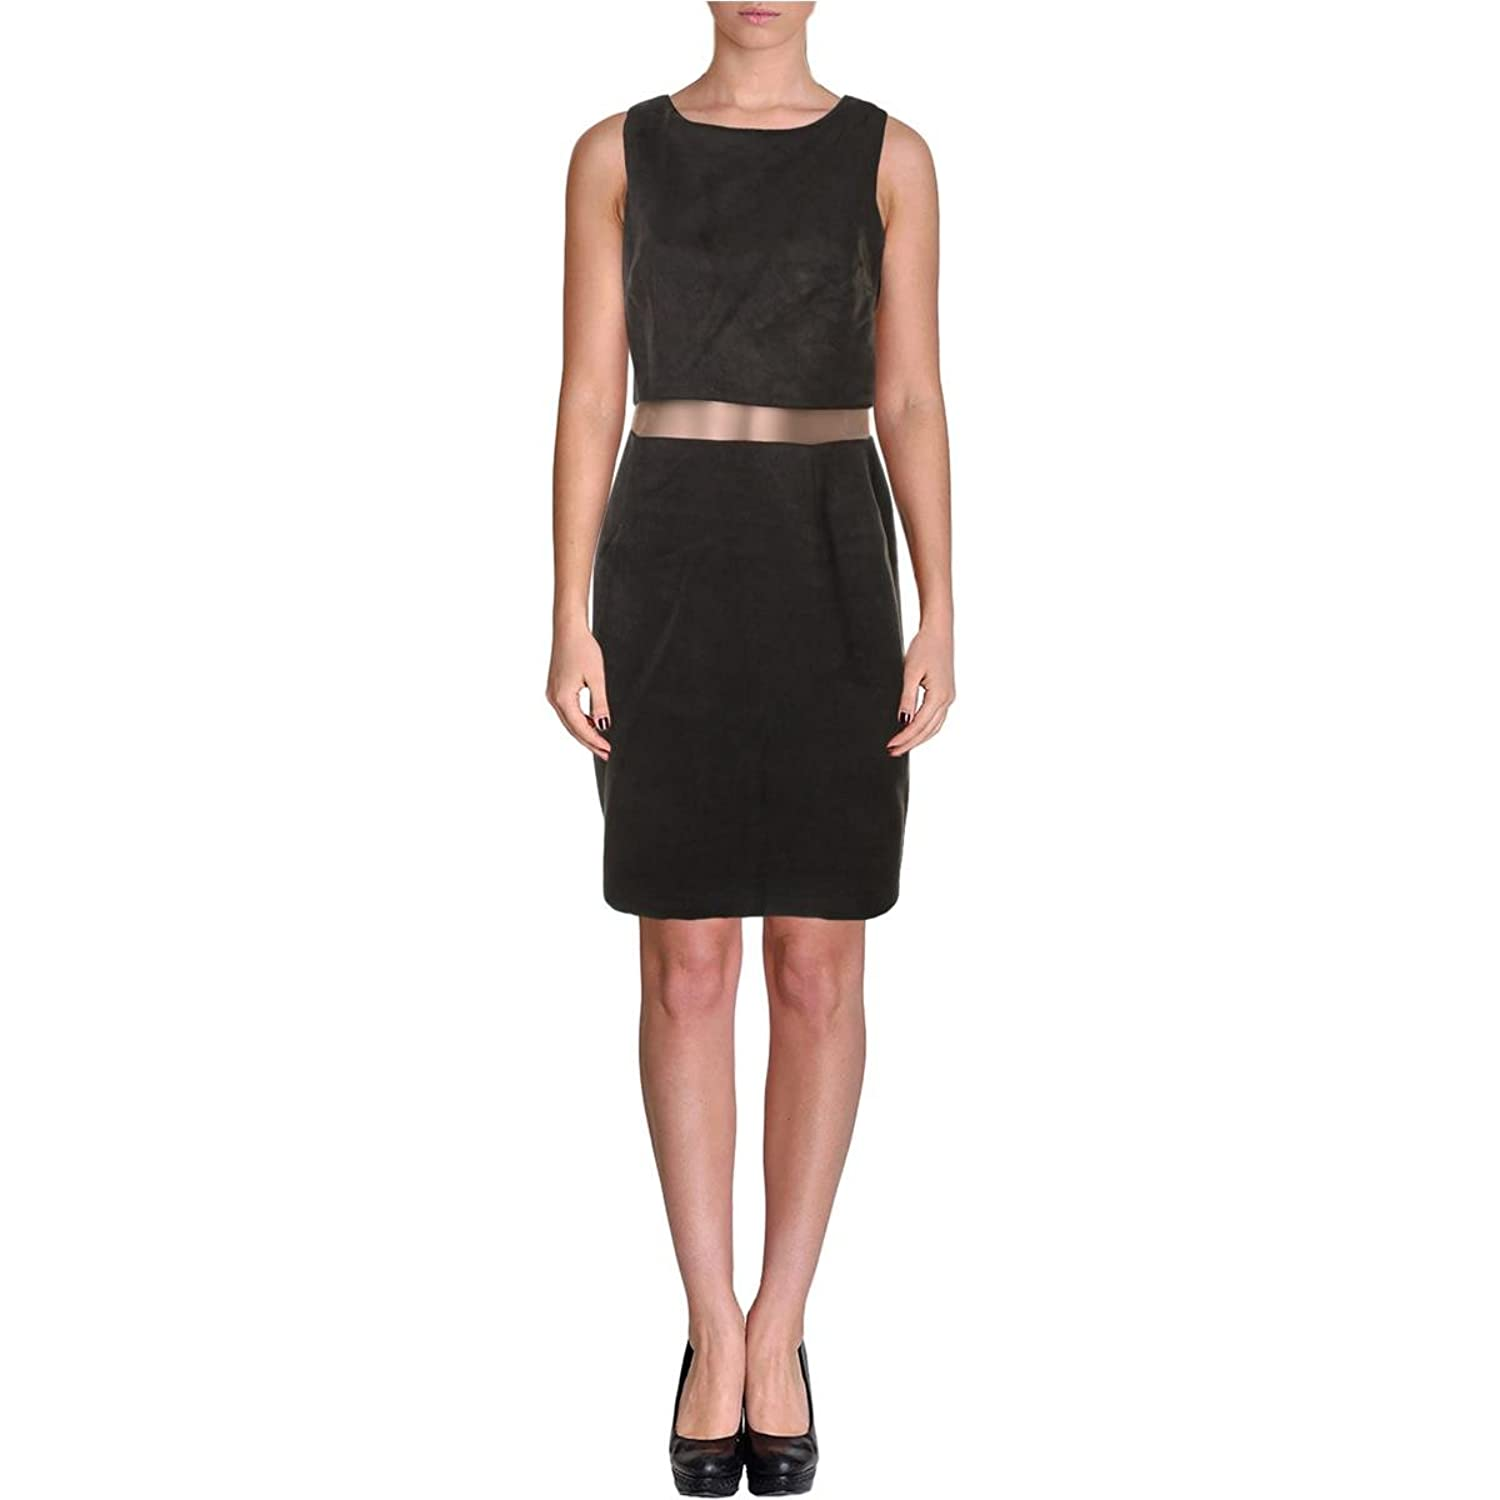 Bailey 44 Womens Faux Suede Mesh Inset Cocktail Dress Black S